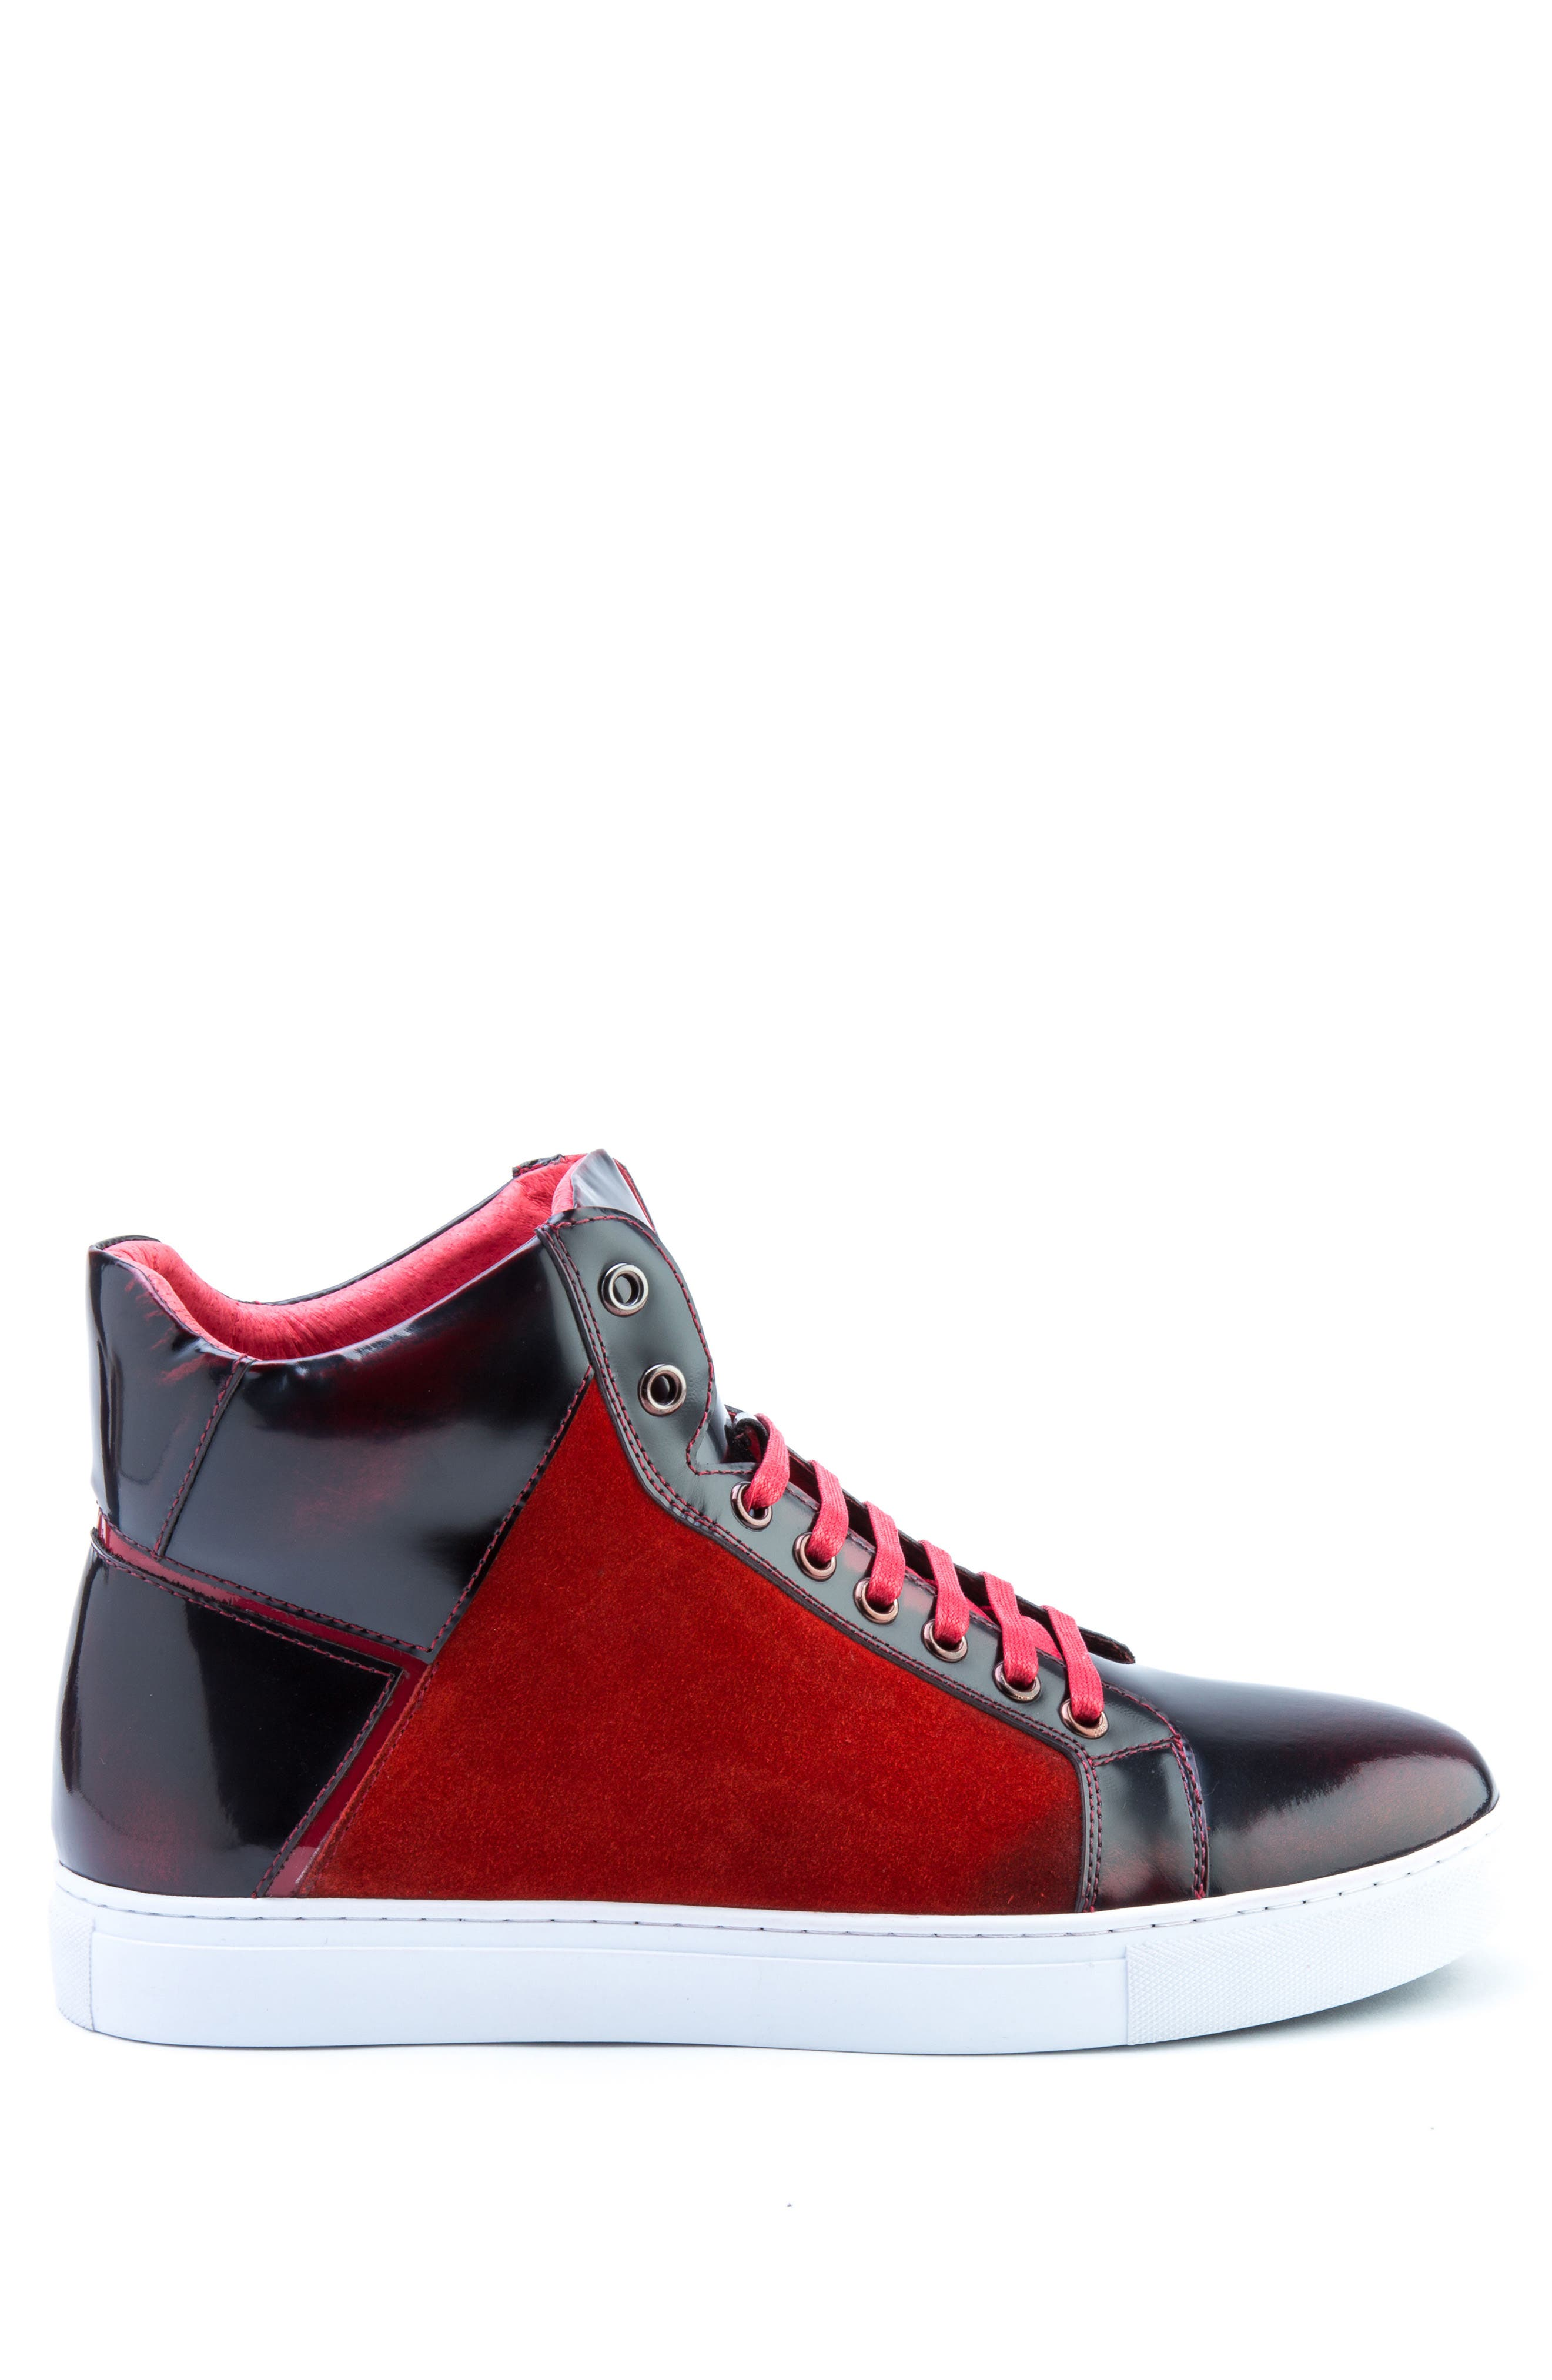 Douglas High Top Sneaker,                             Alternate thumbnail 3, color,                             RED LEATHER